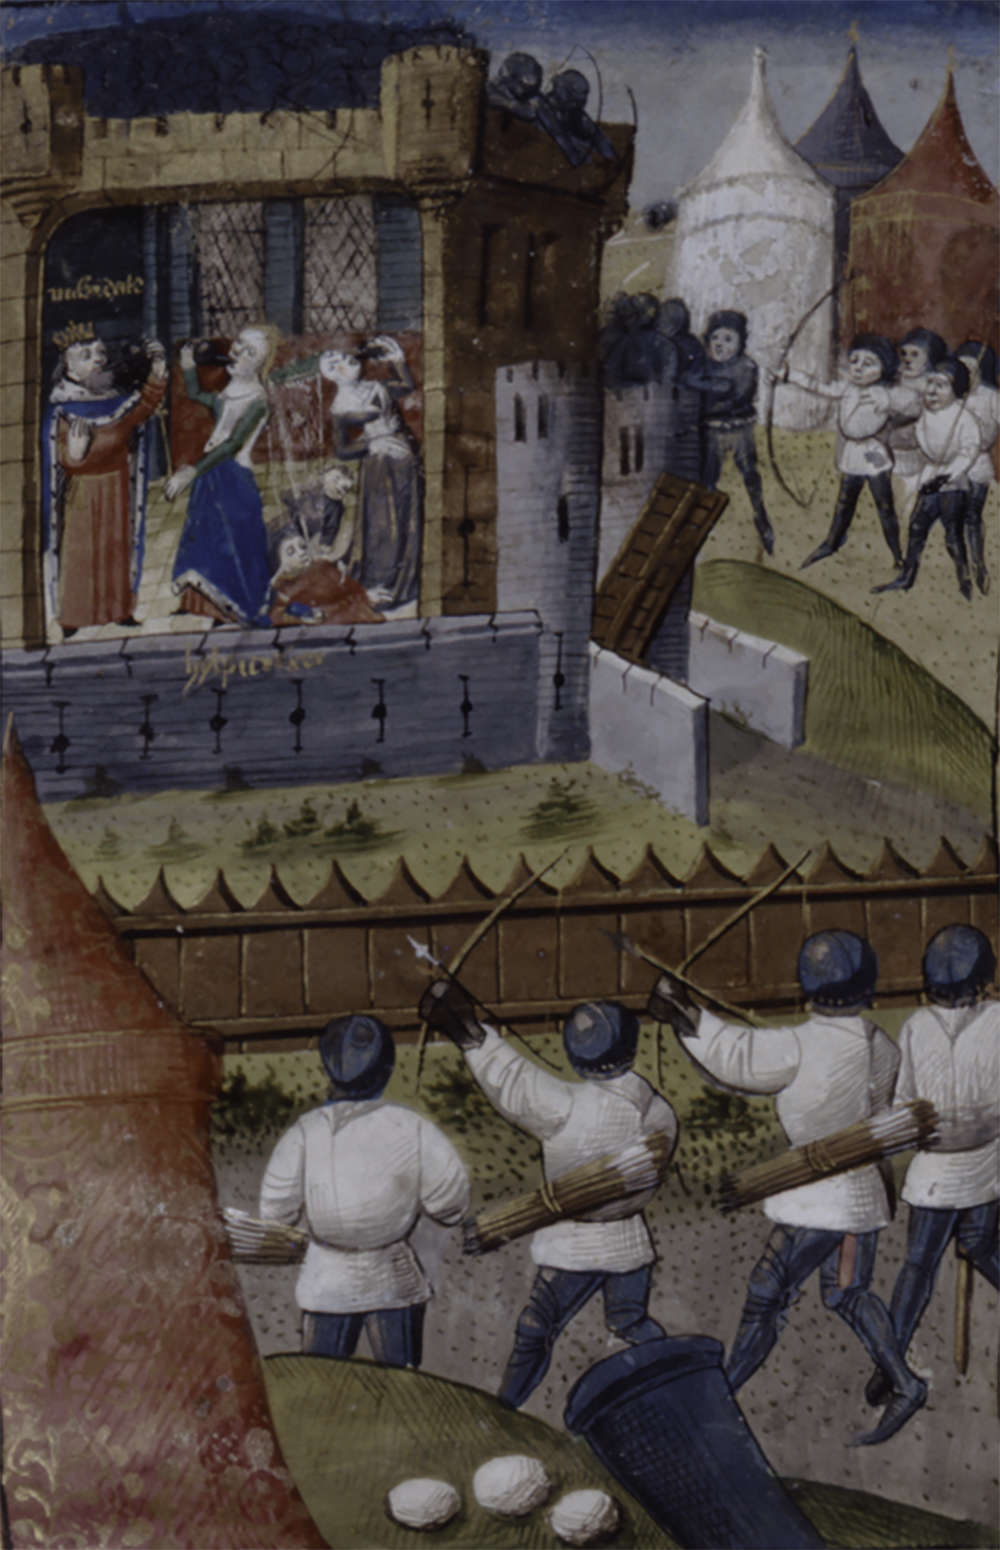 Miniature showing Roman archers surrounding and attacking the palace chamber where Mithridates, Hypsicratea, and three others are drinking poison from chalices, from a manuscript of De claris mulieribus by Giovanni Boccaccio, 1450.